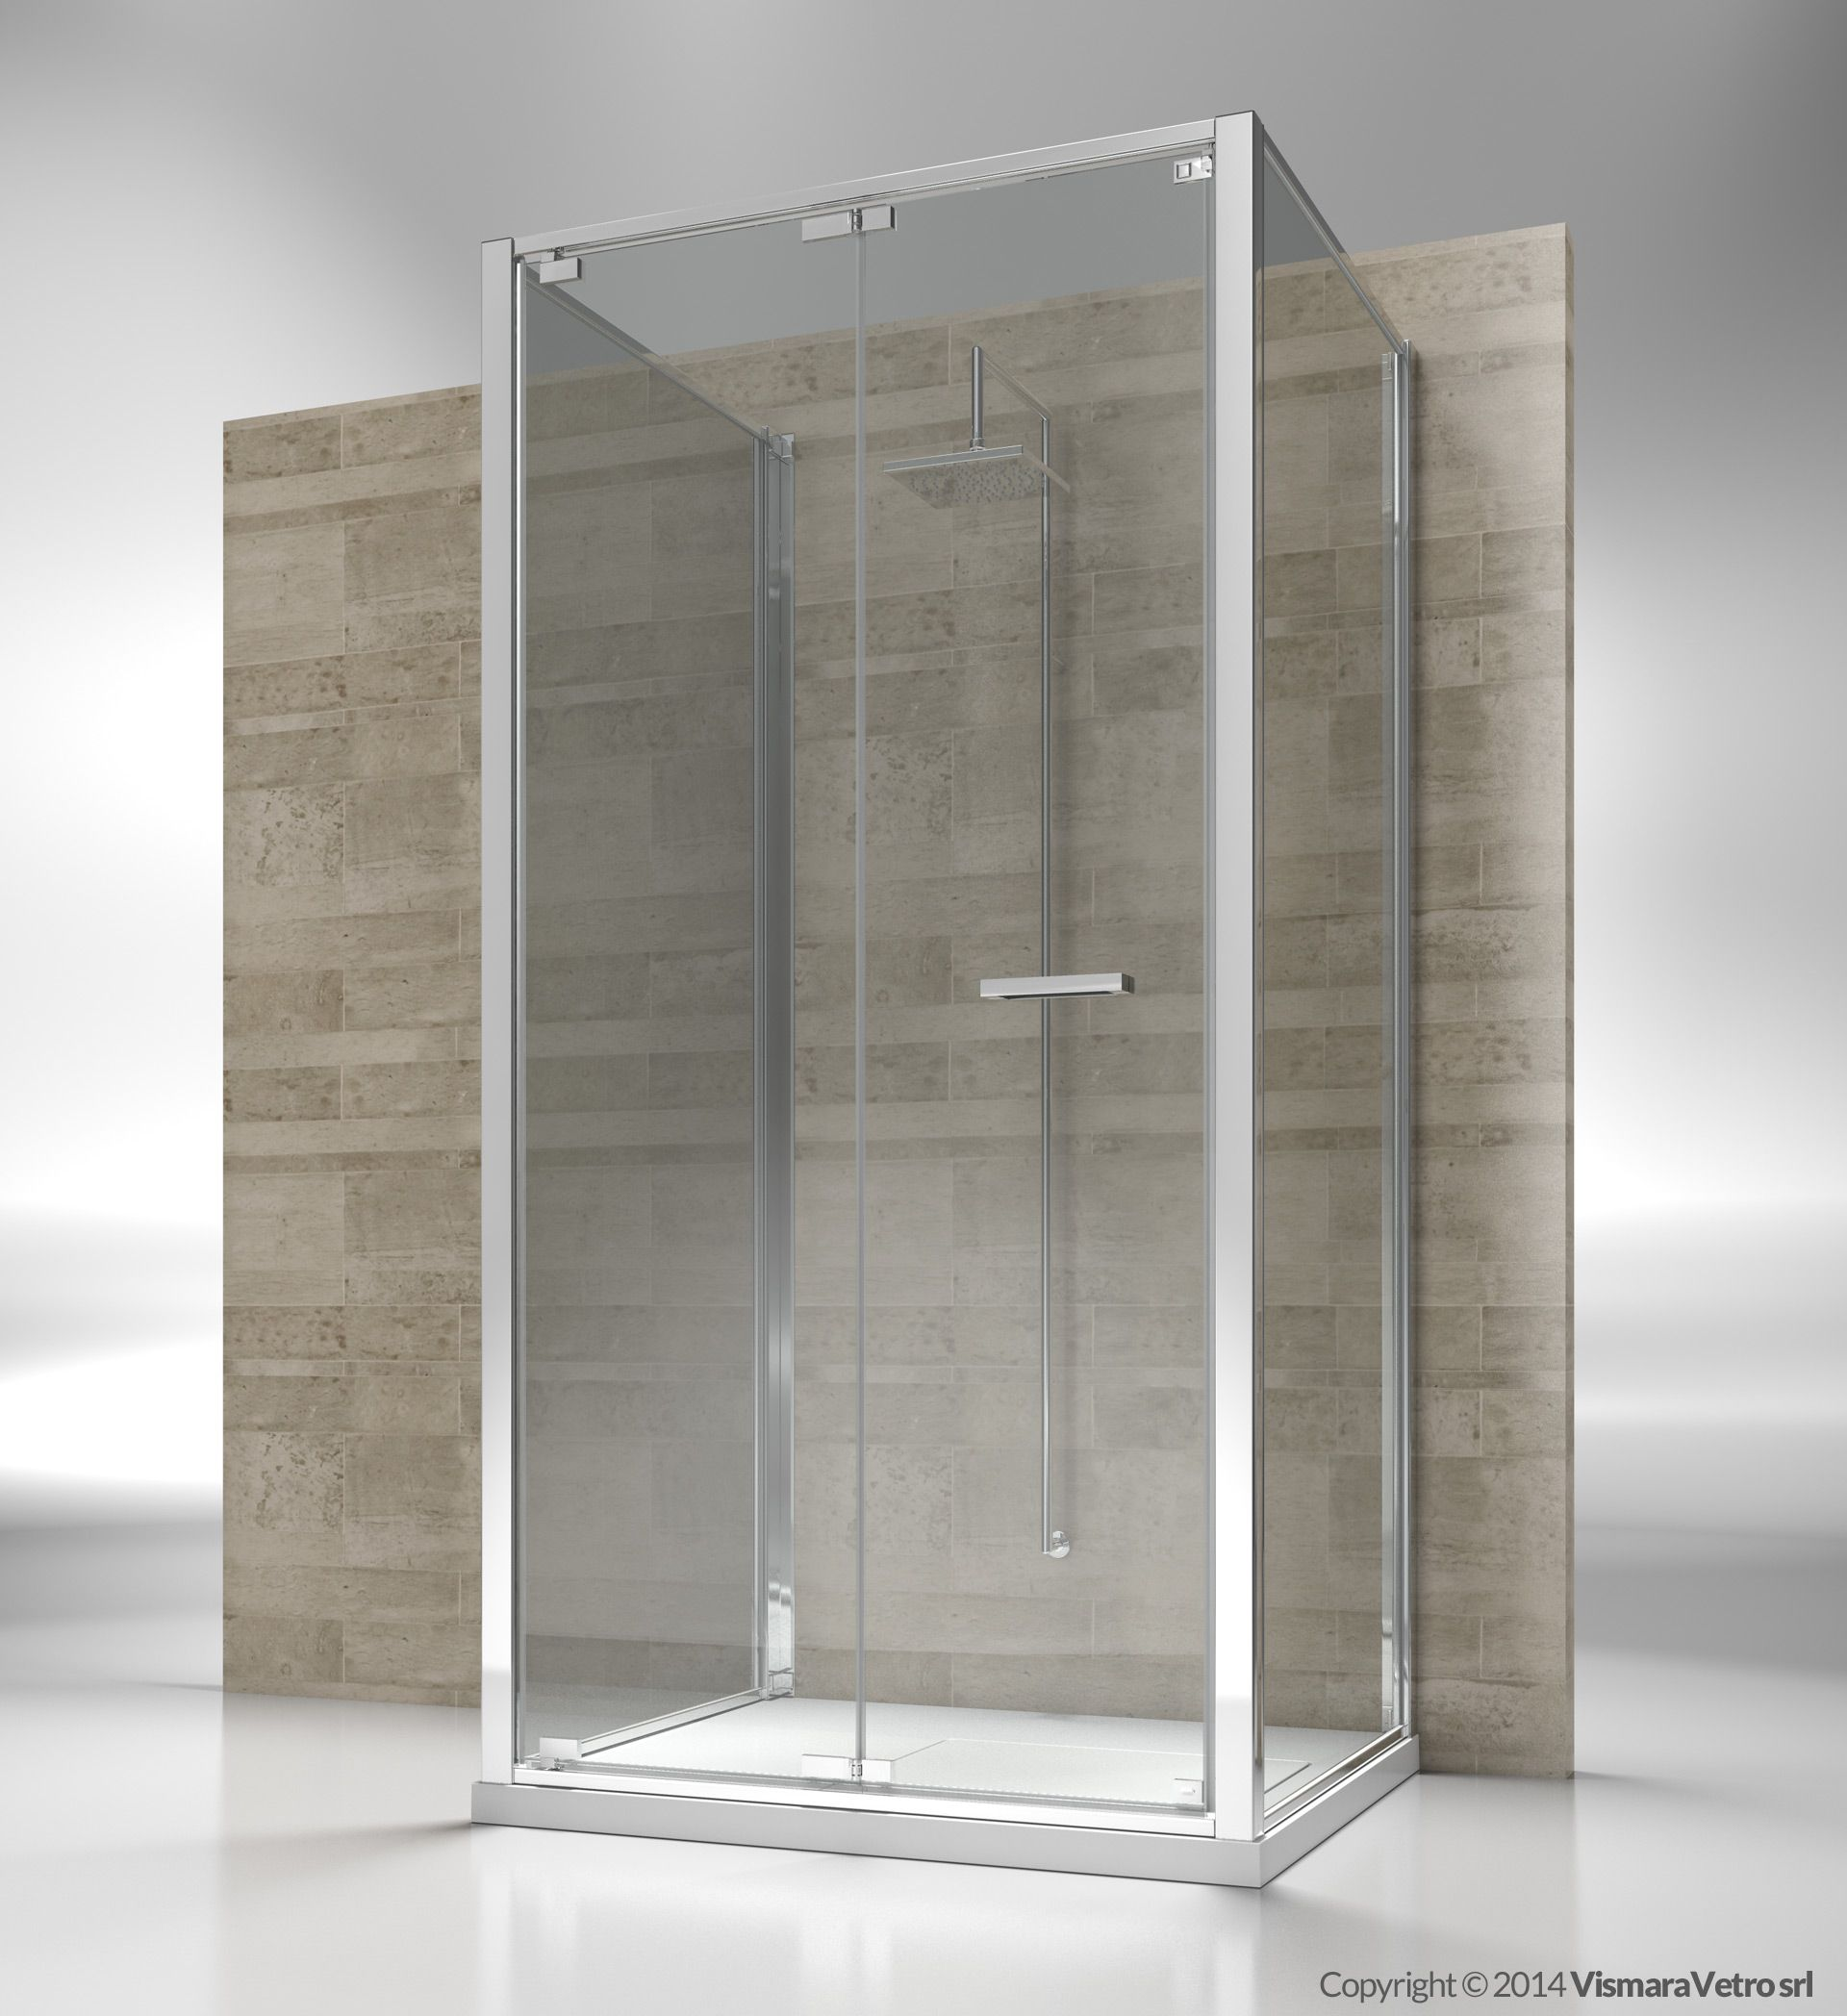 Framed 3 Sided Shower Enclosure With Pivoting Door Reversible And Extensible Of 3 Cm For Each Shower Enclosure Walk In Shower Enclosures Bathroom Inspiration